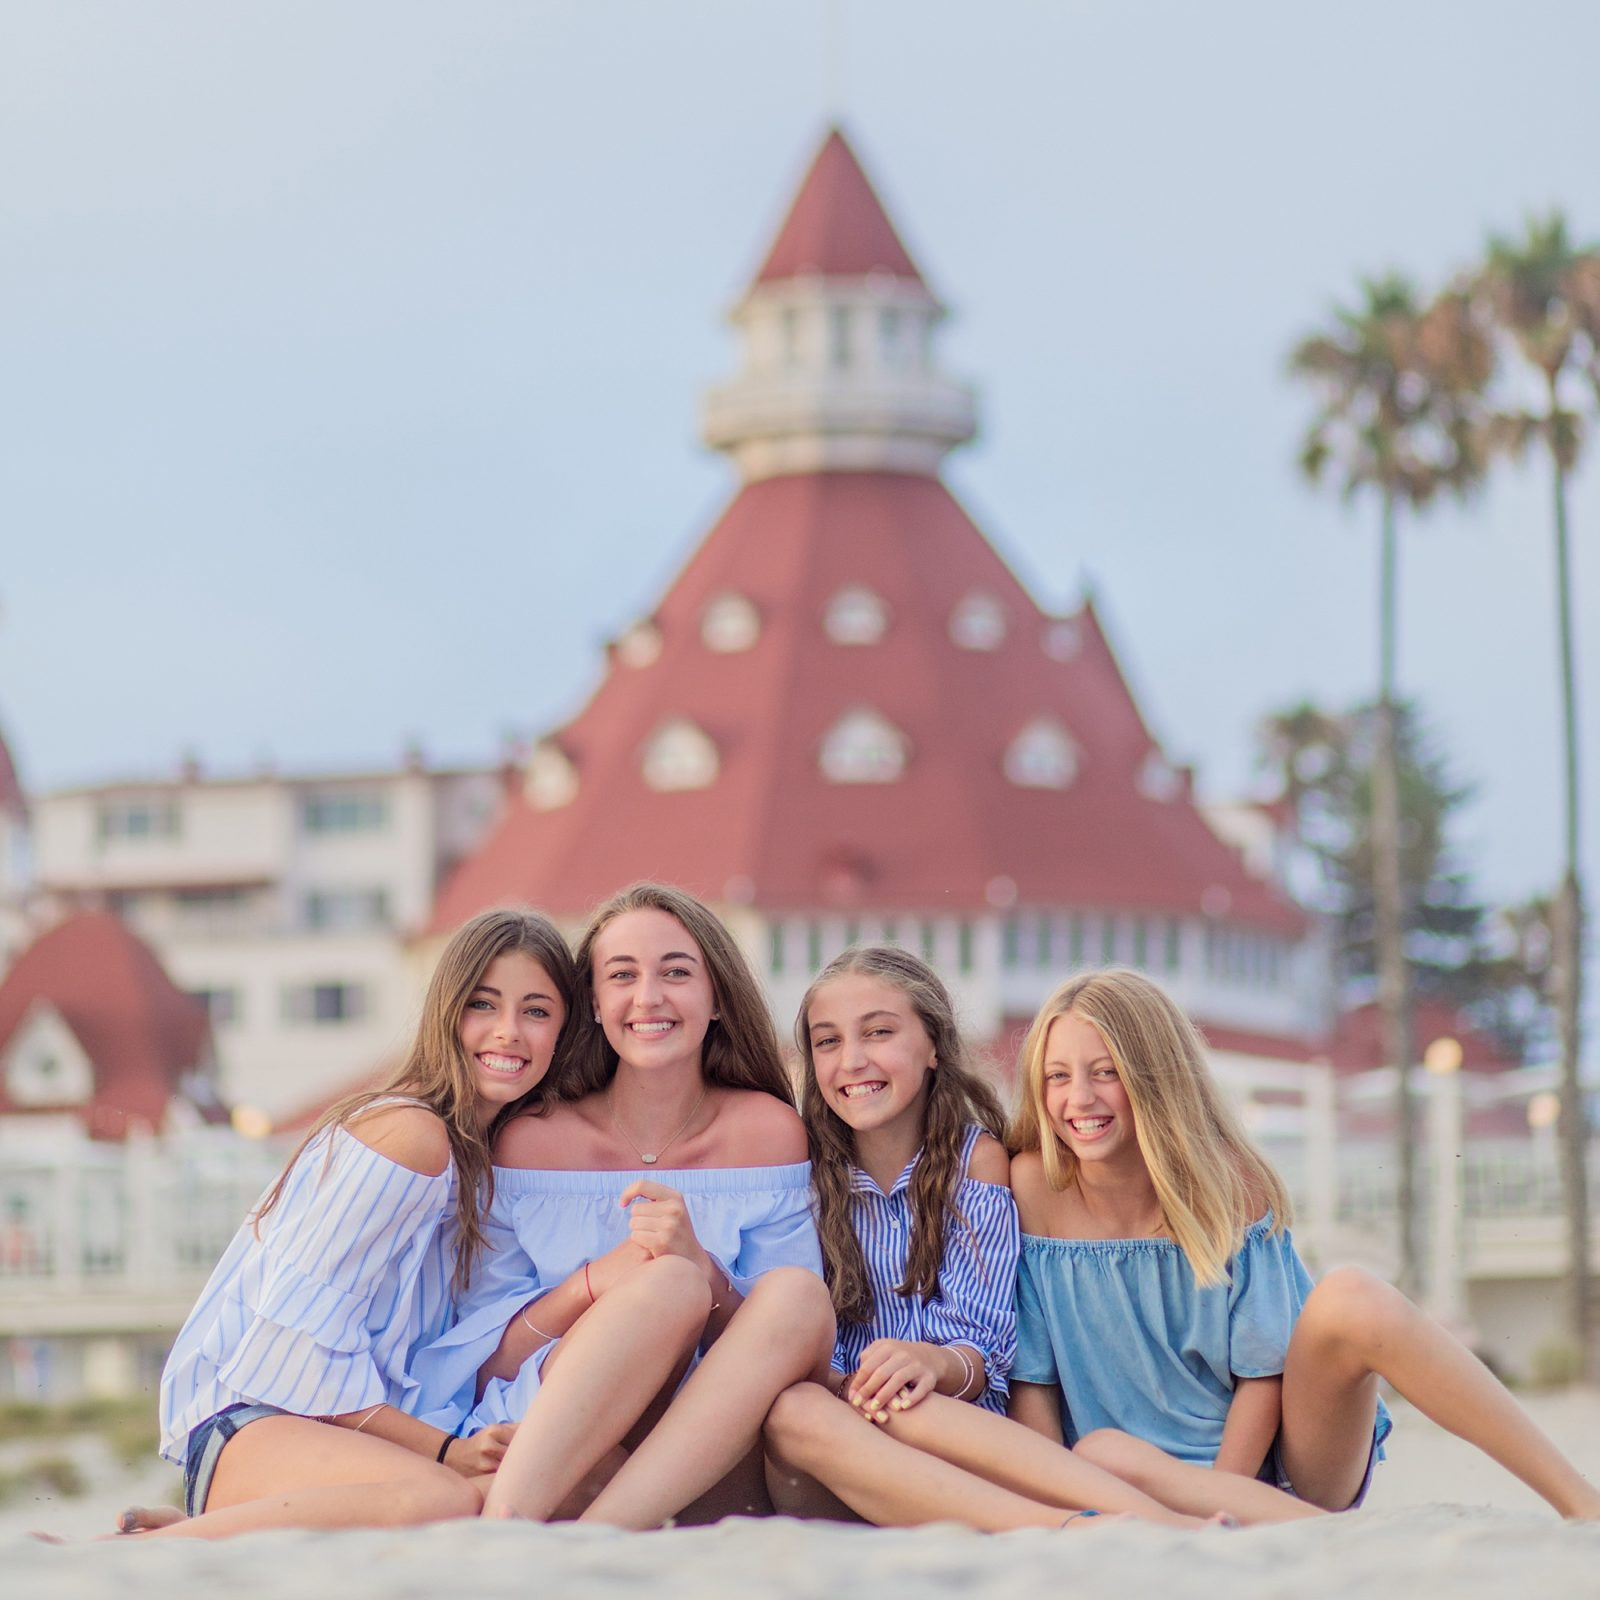 Hotel del Coronado Photography | San Diego Photography